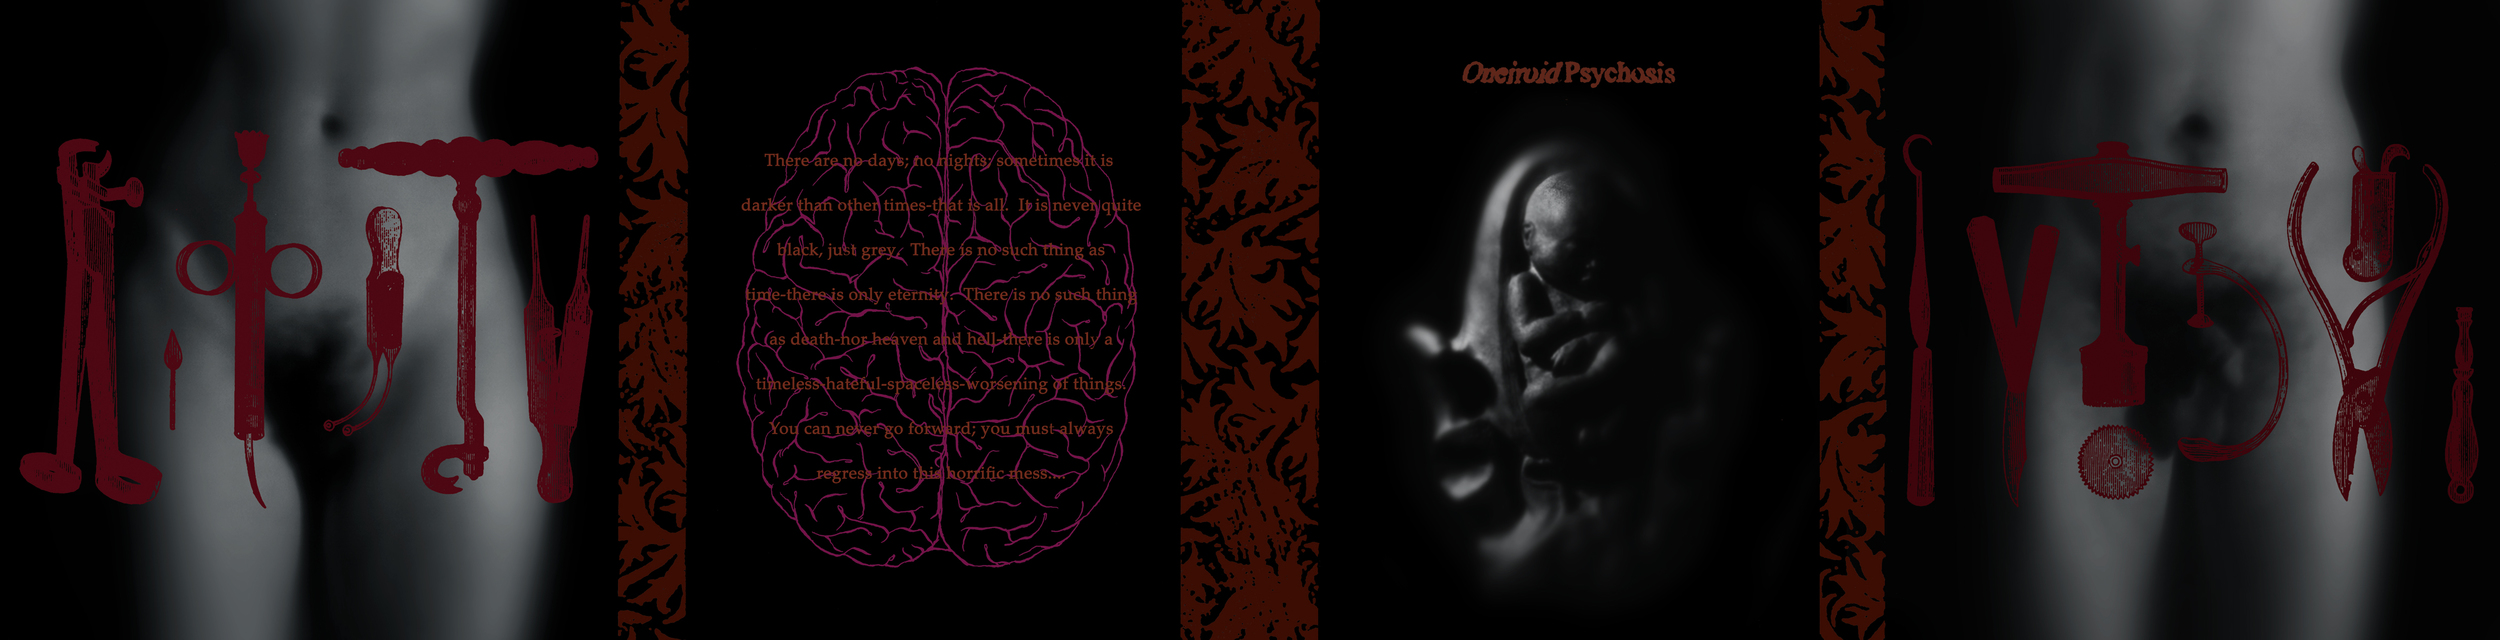 Oneiroid Psychosis,  Stillbirth . Gatefold CD booklet . 1995. Sculpted clay fetus and womb, Photography, Pen and ink,Found medical instrument illustrations. Released by Decibel Records.